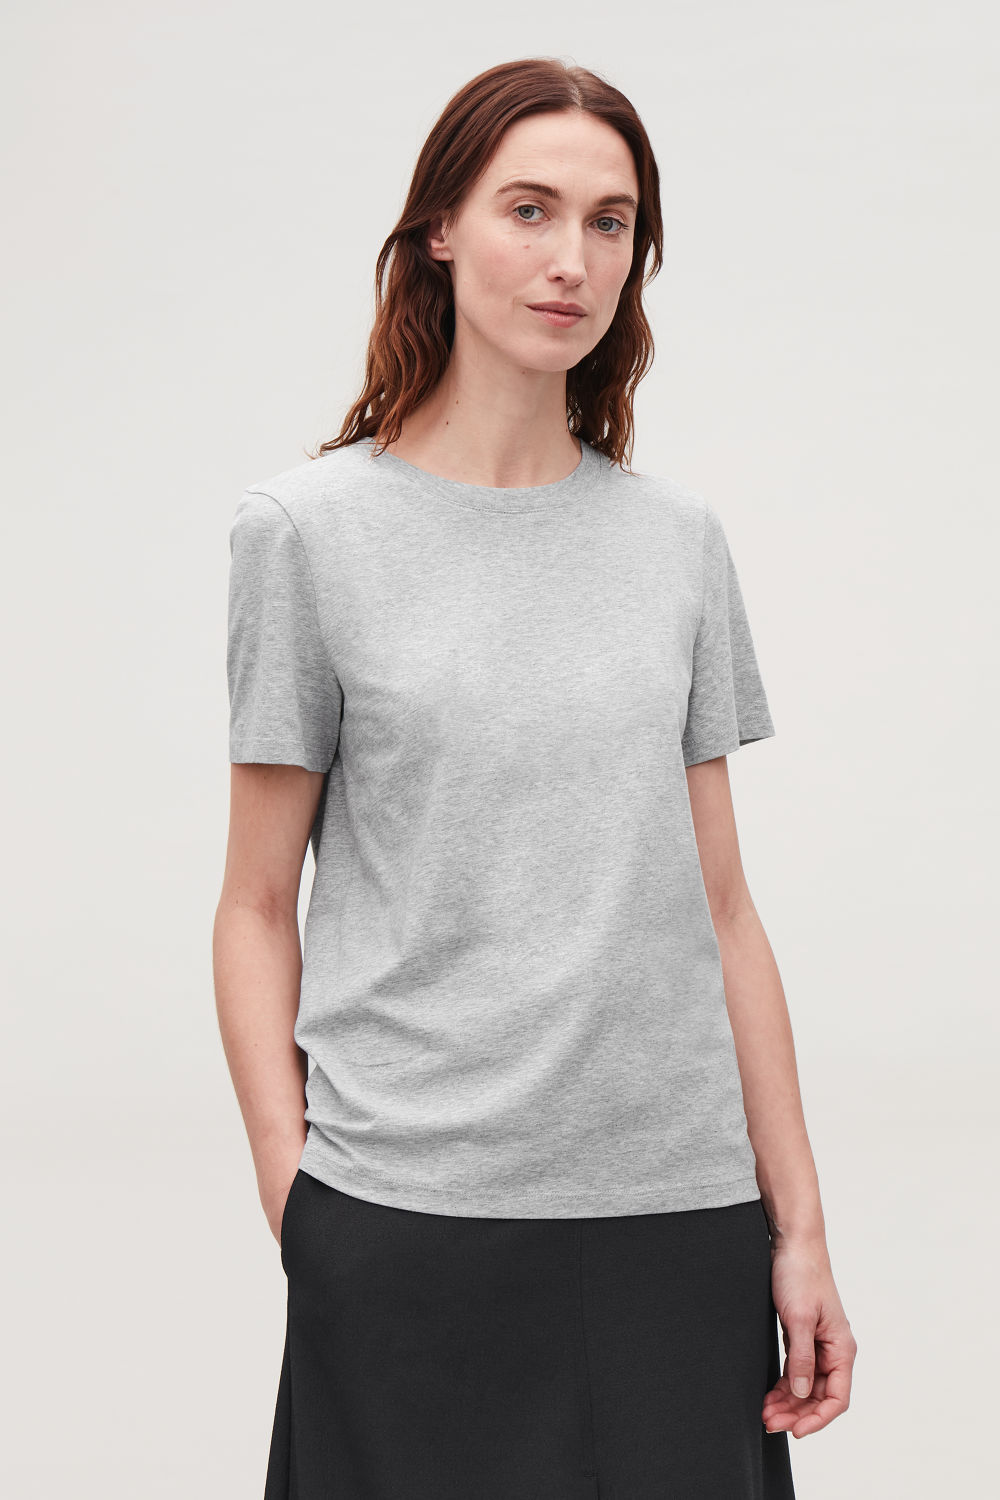 6224a901b8 T-shirts - Women - COS